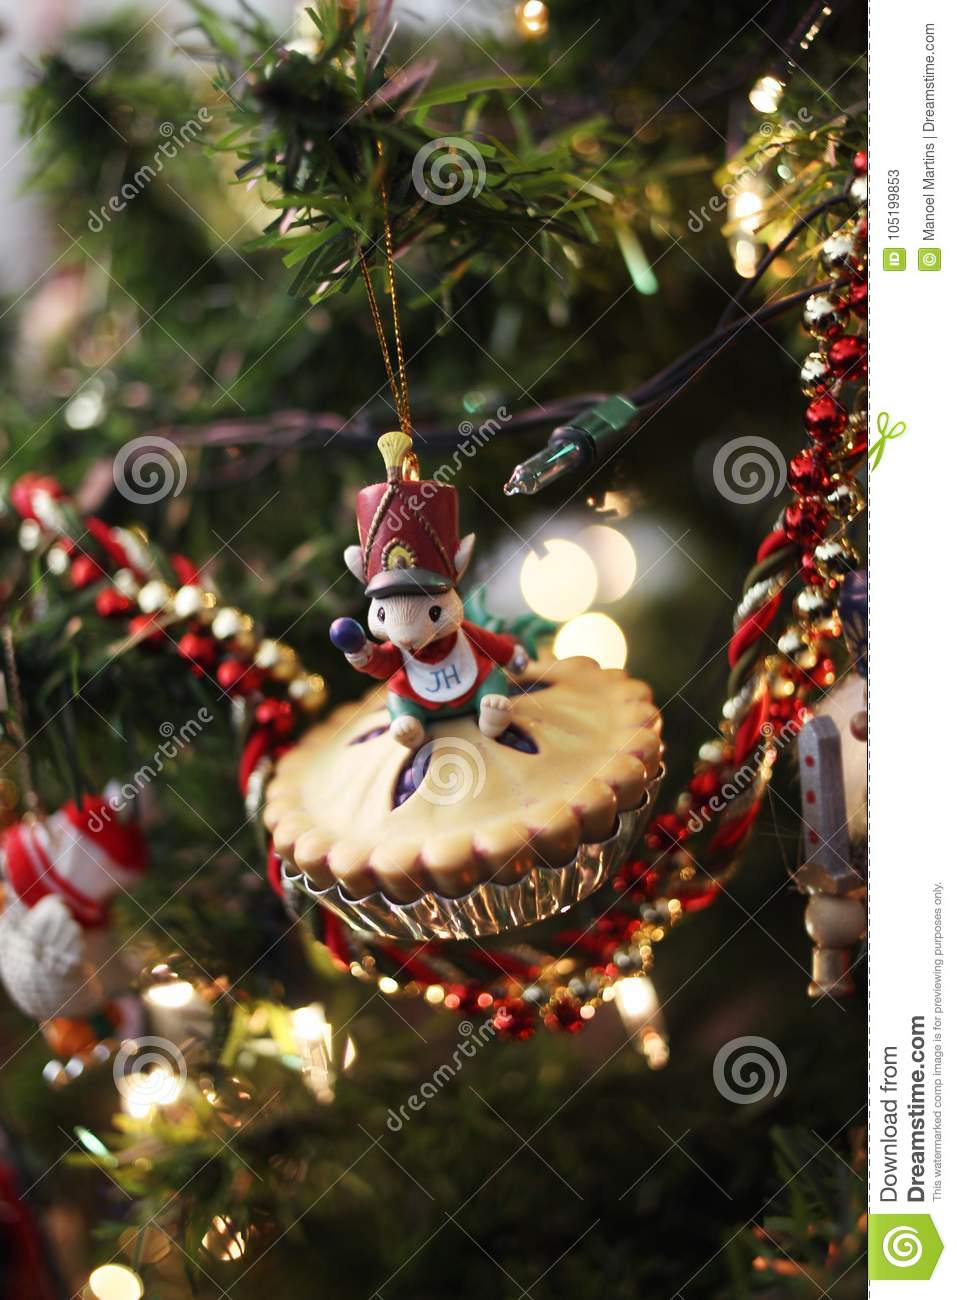 Pie Christmas Ornament